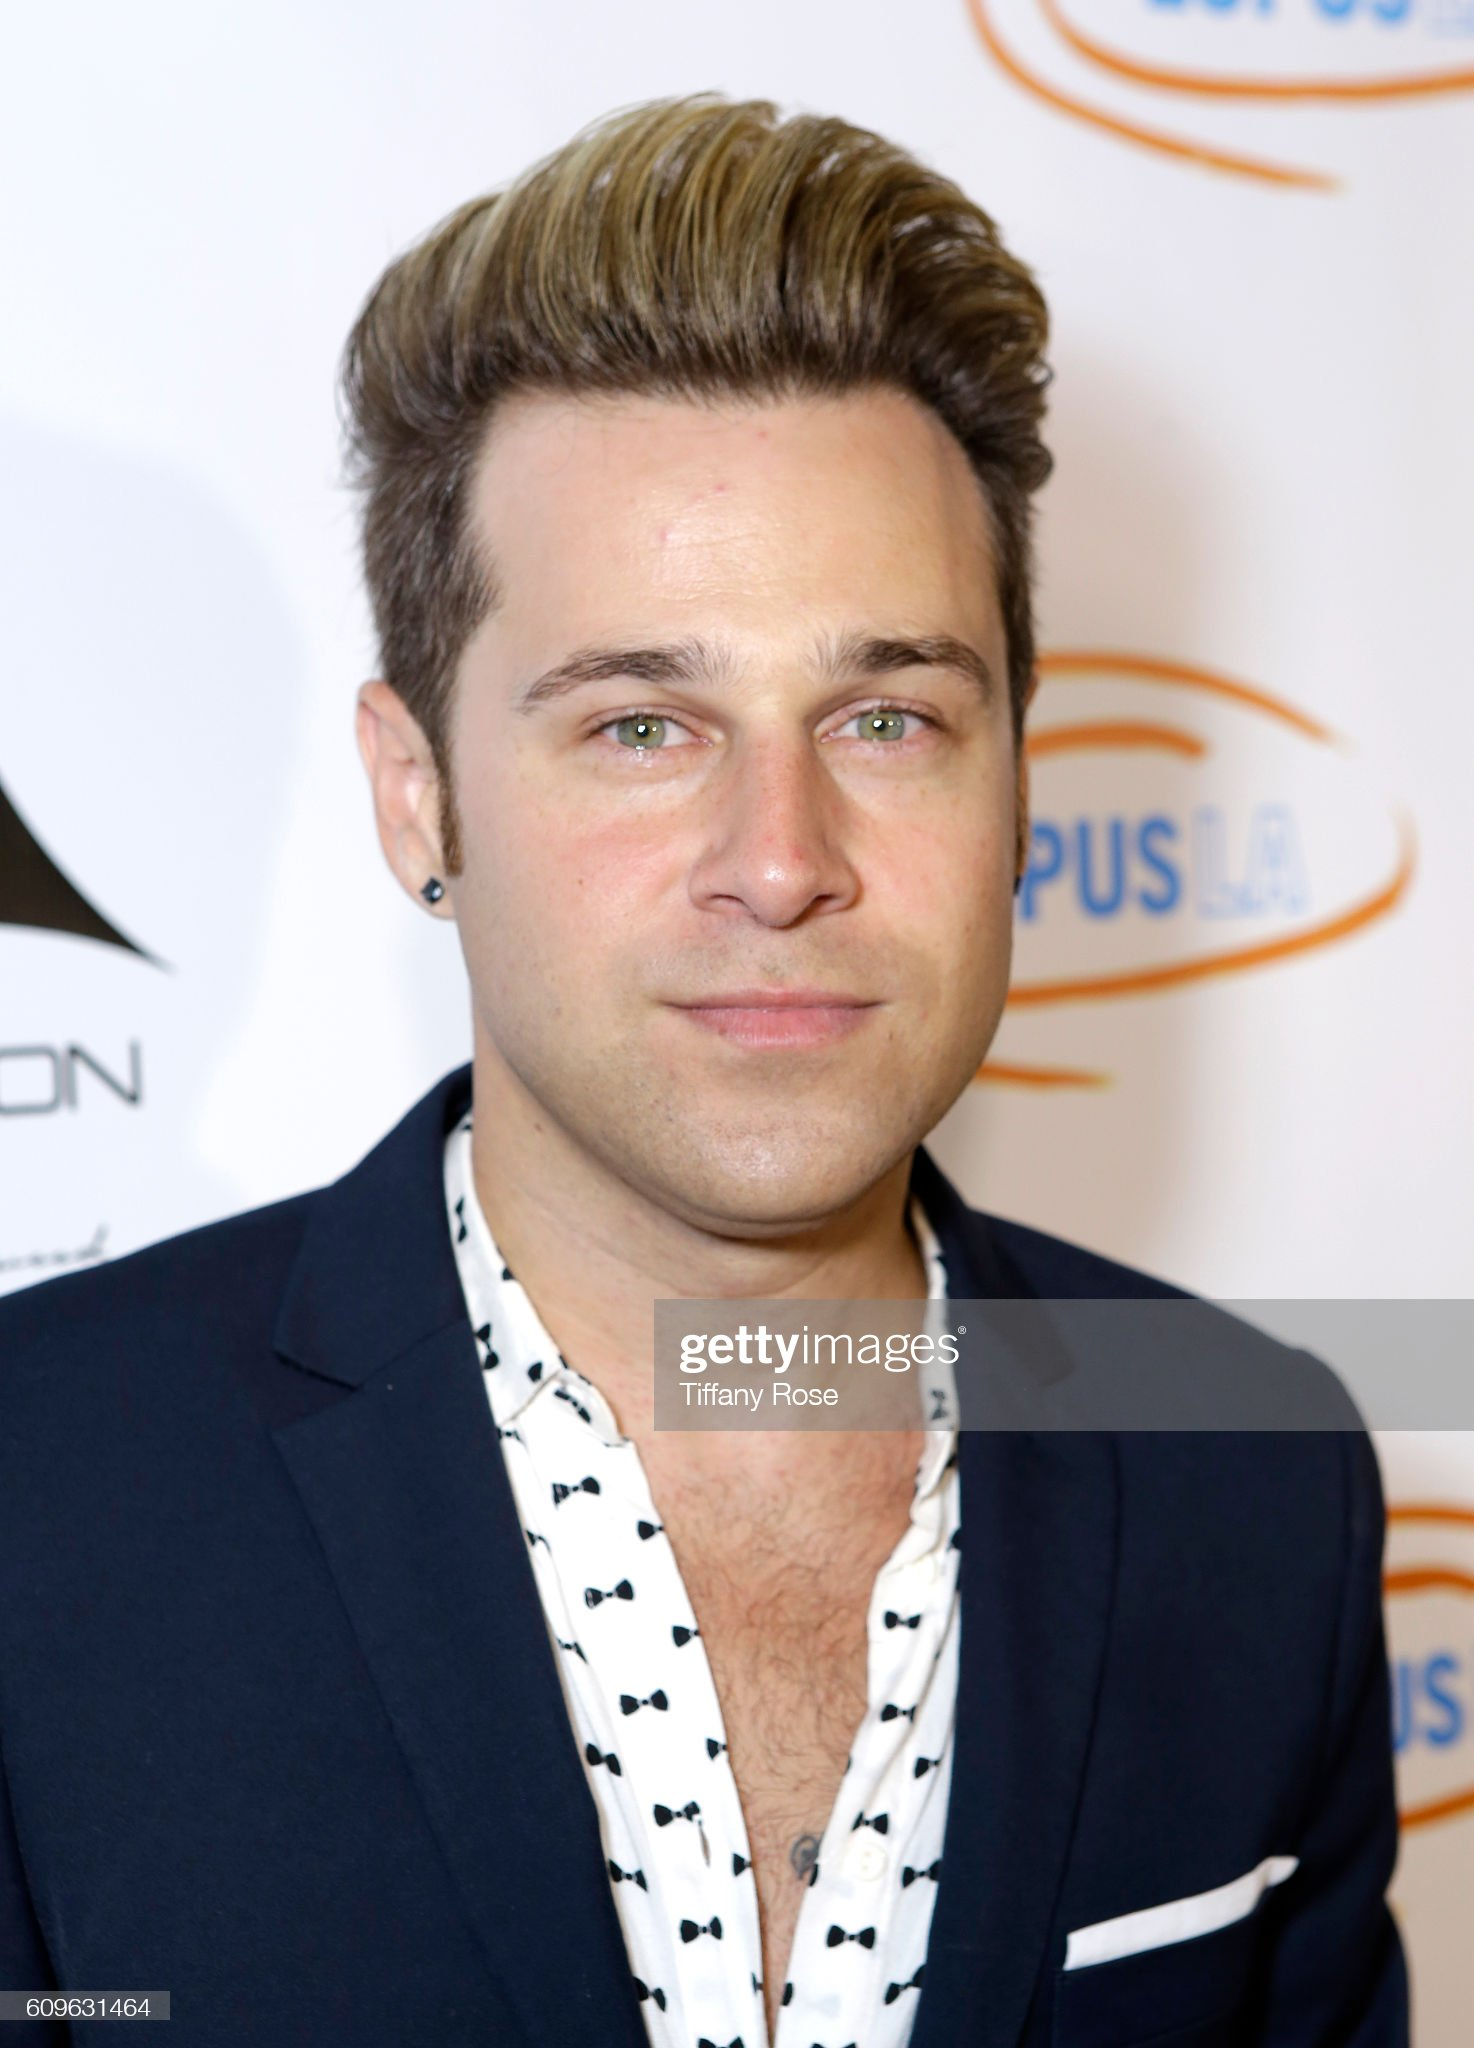 Ojos verdes - Famosas y famosos con los ojos de color VERDE Singersongwriter-ryan-cabrera-attends-the-get-lucky-for-lupus-poker-picture-id609631464?s=2048x2048